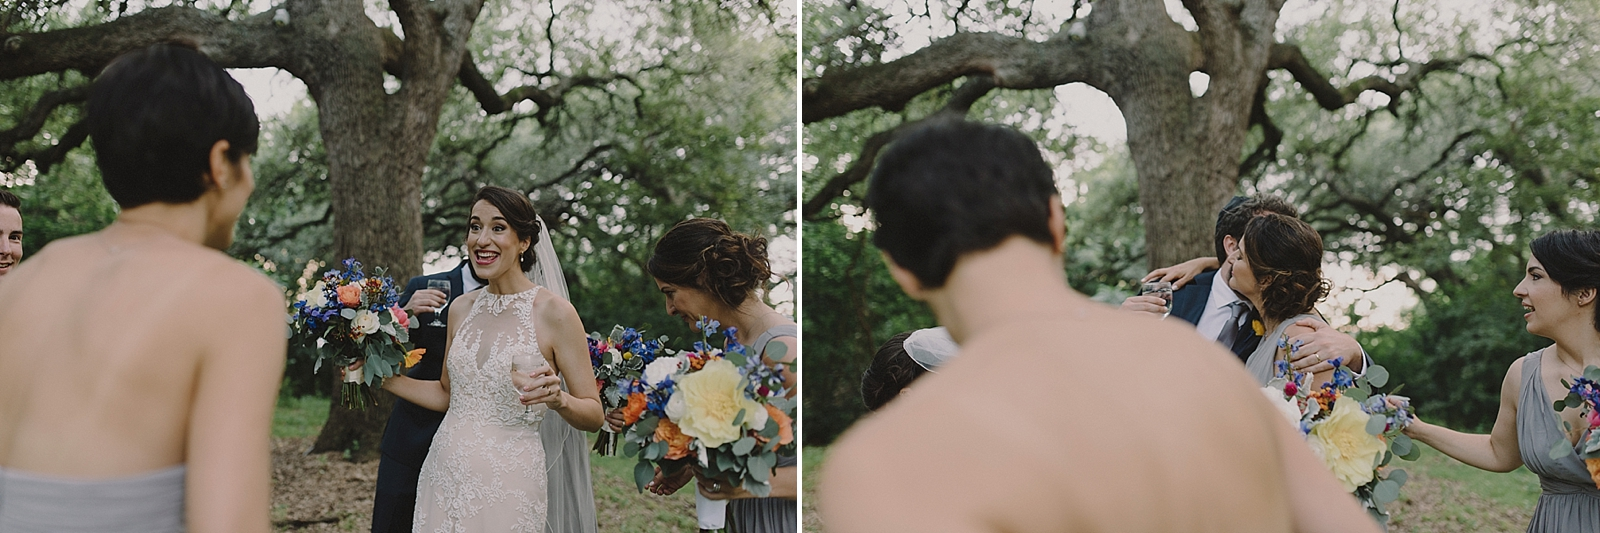 Austin Wedding Mercury Hall Lindsey and Tom - 232